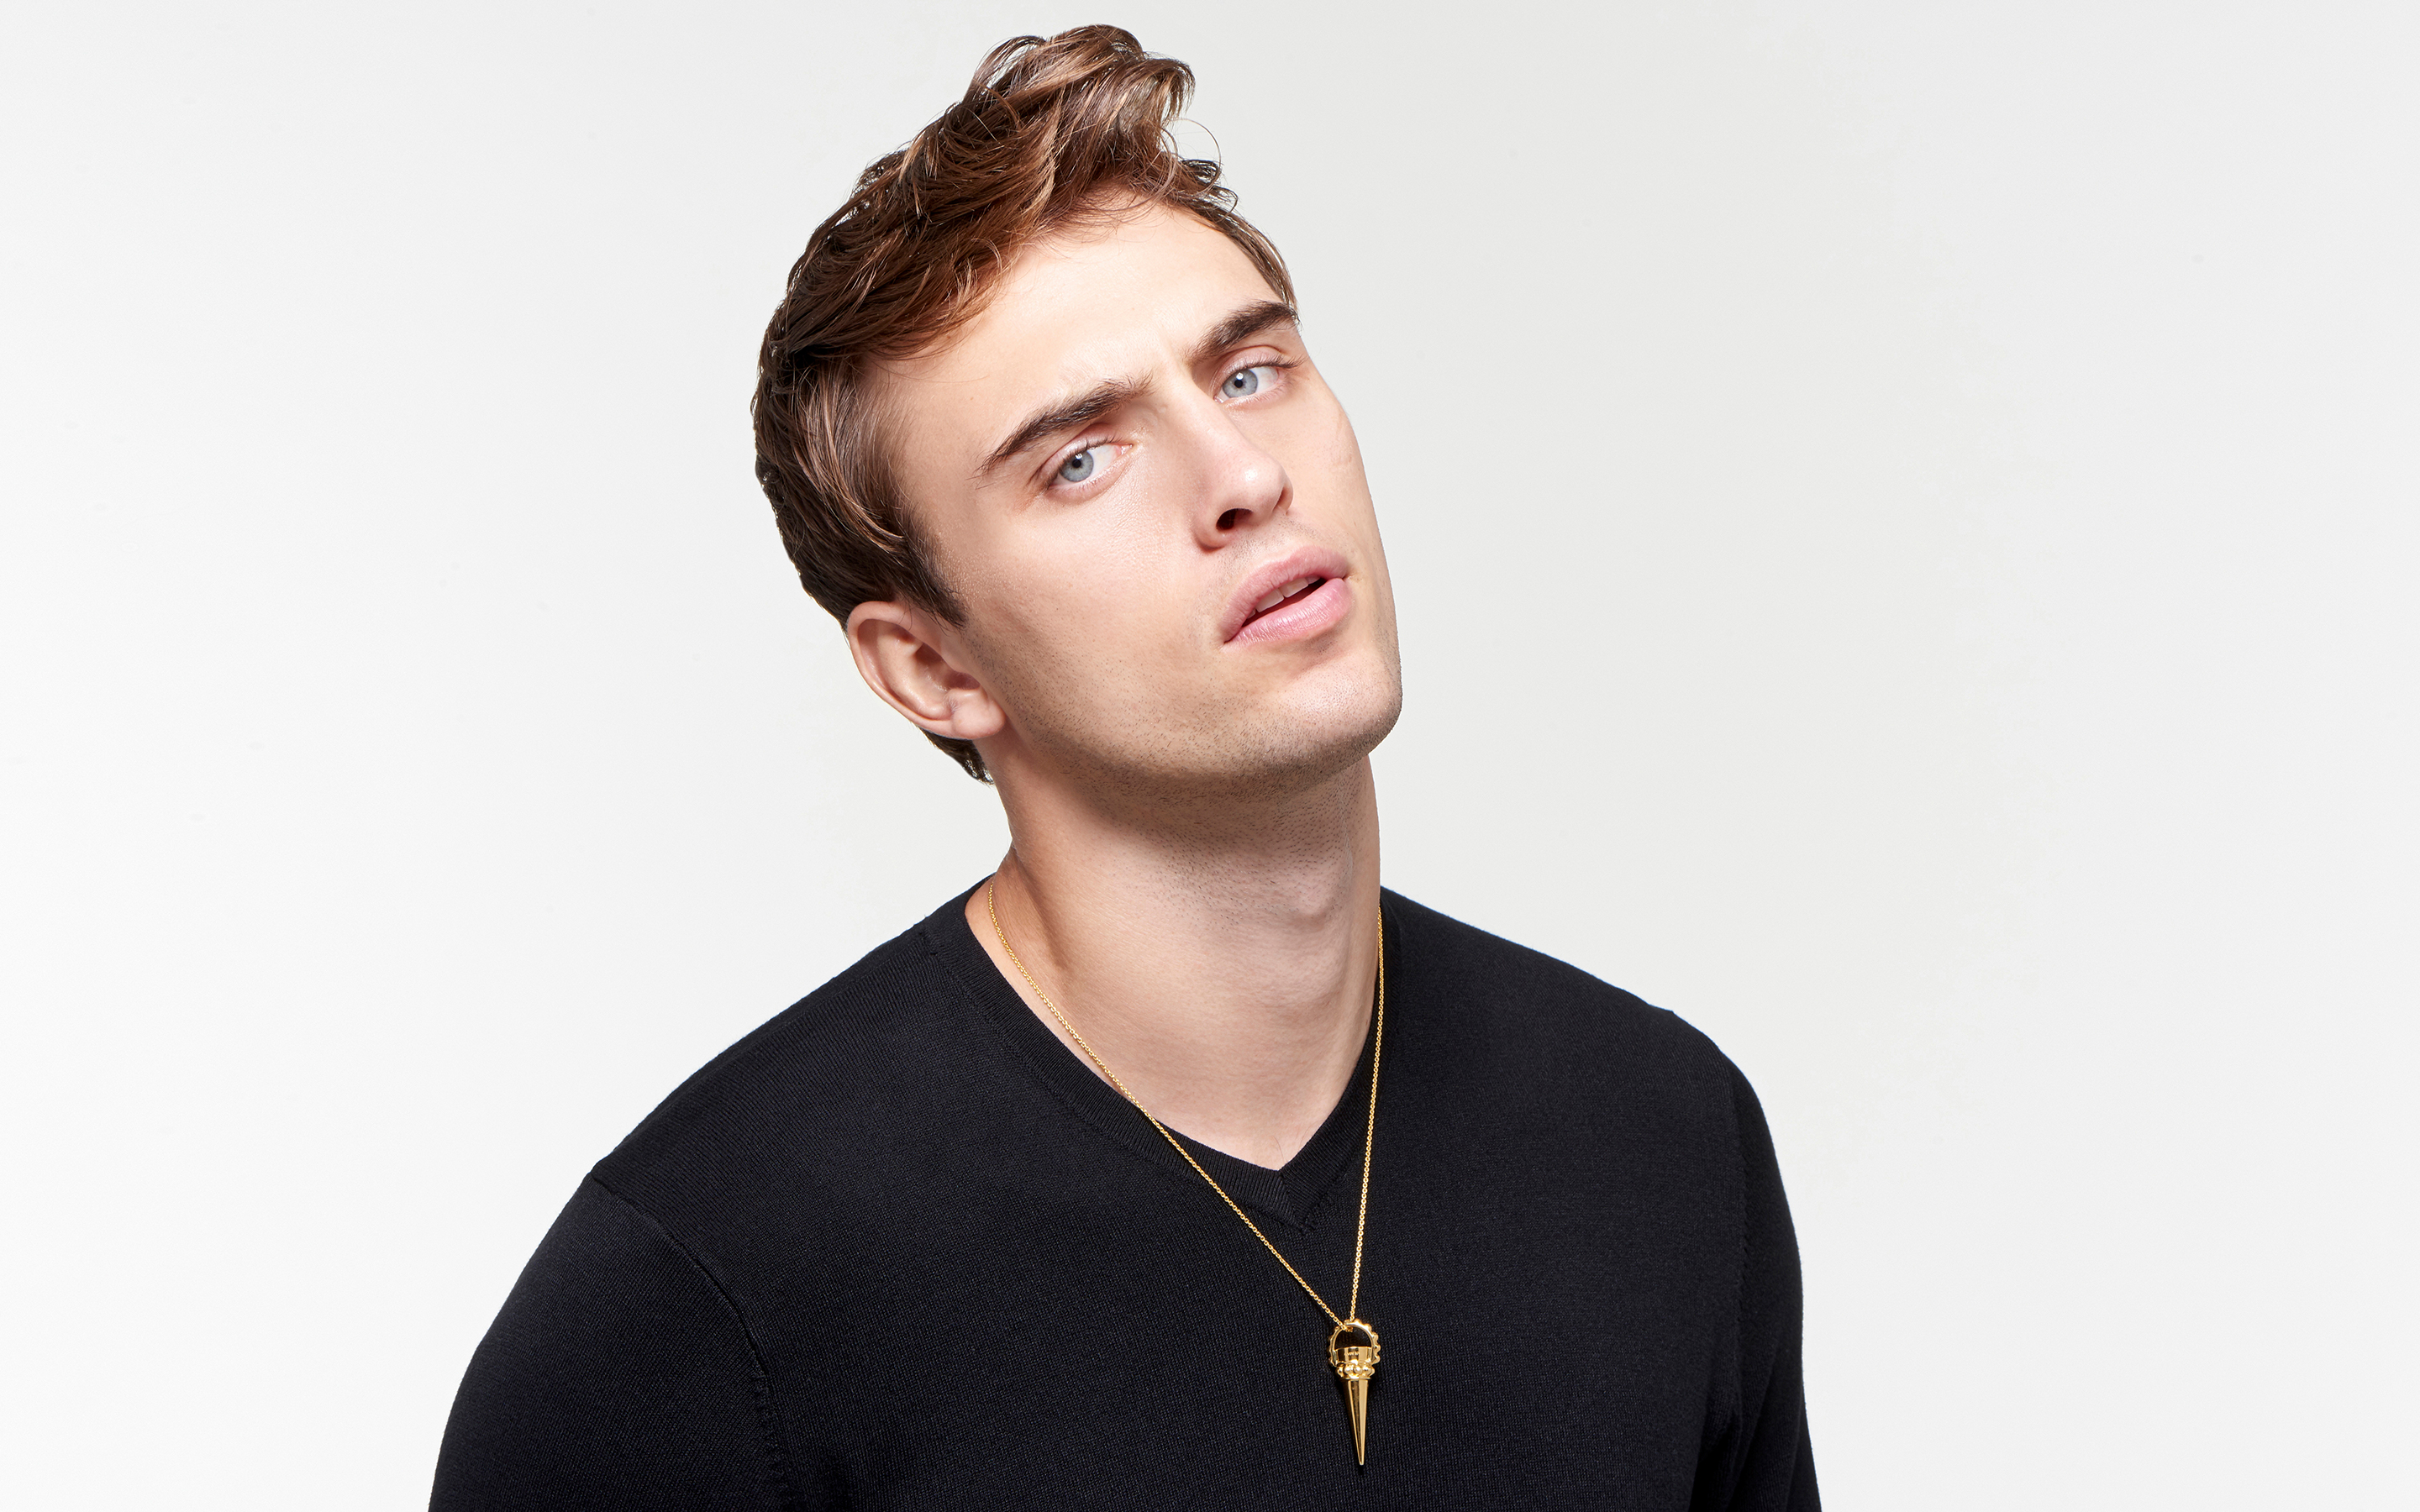 22 karat gold cone necklace on male model